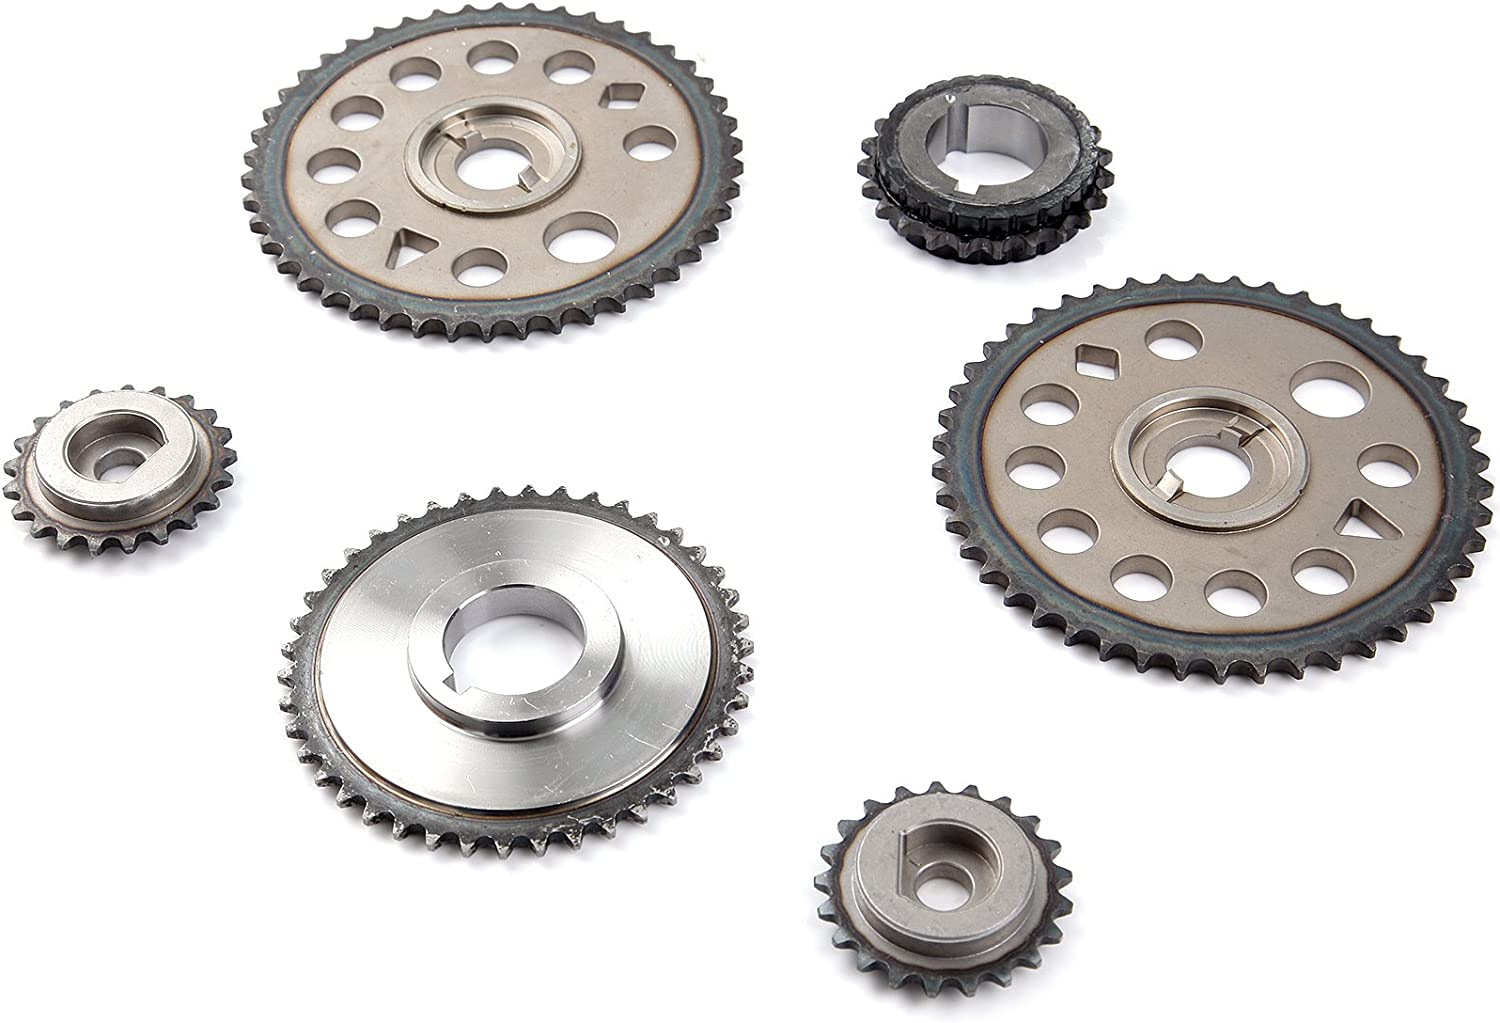 OCPTY 90537295 Timing Chain Kits with Crank Sprocket Tensioner fit for 2005 Chevrolet Cavalier 2011 2012 Buick Lacrosse 2003 2004 Oldsmobile Alero 2004 Pontiac Grand Am 2009 2010 Saturn Sky